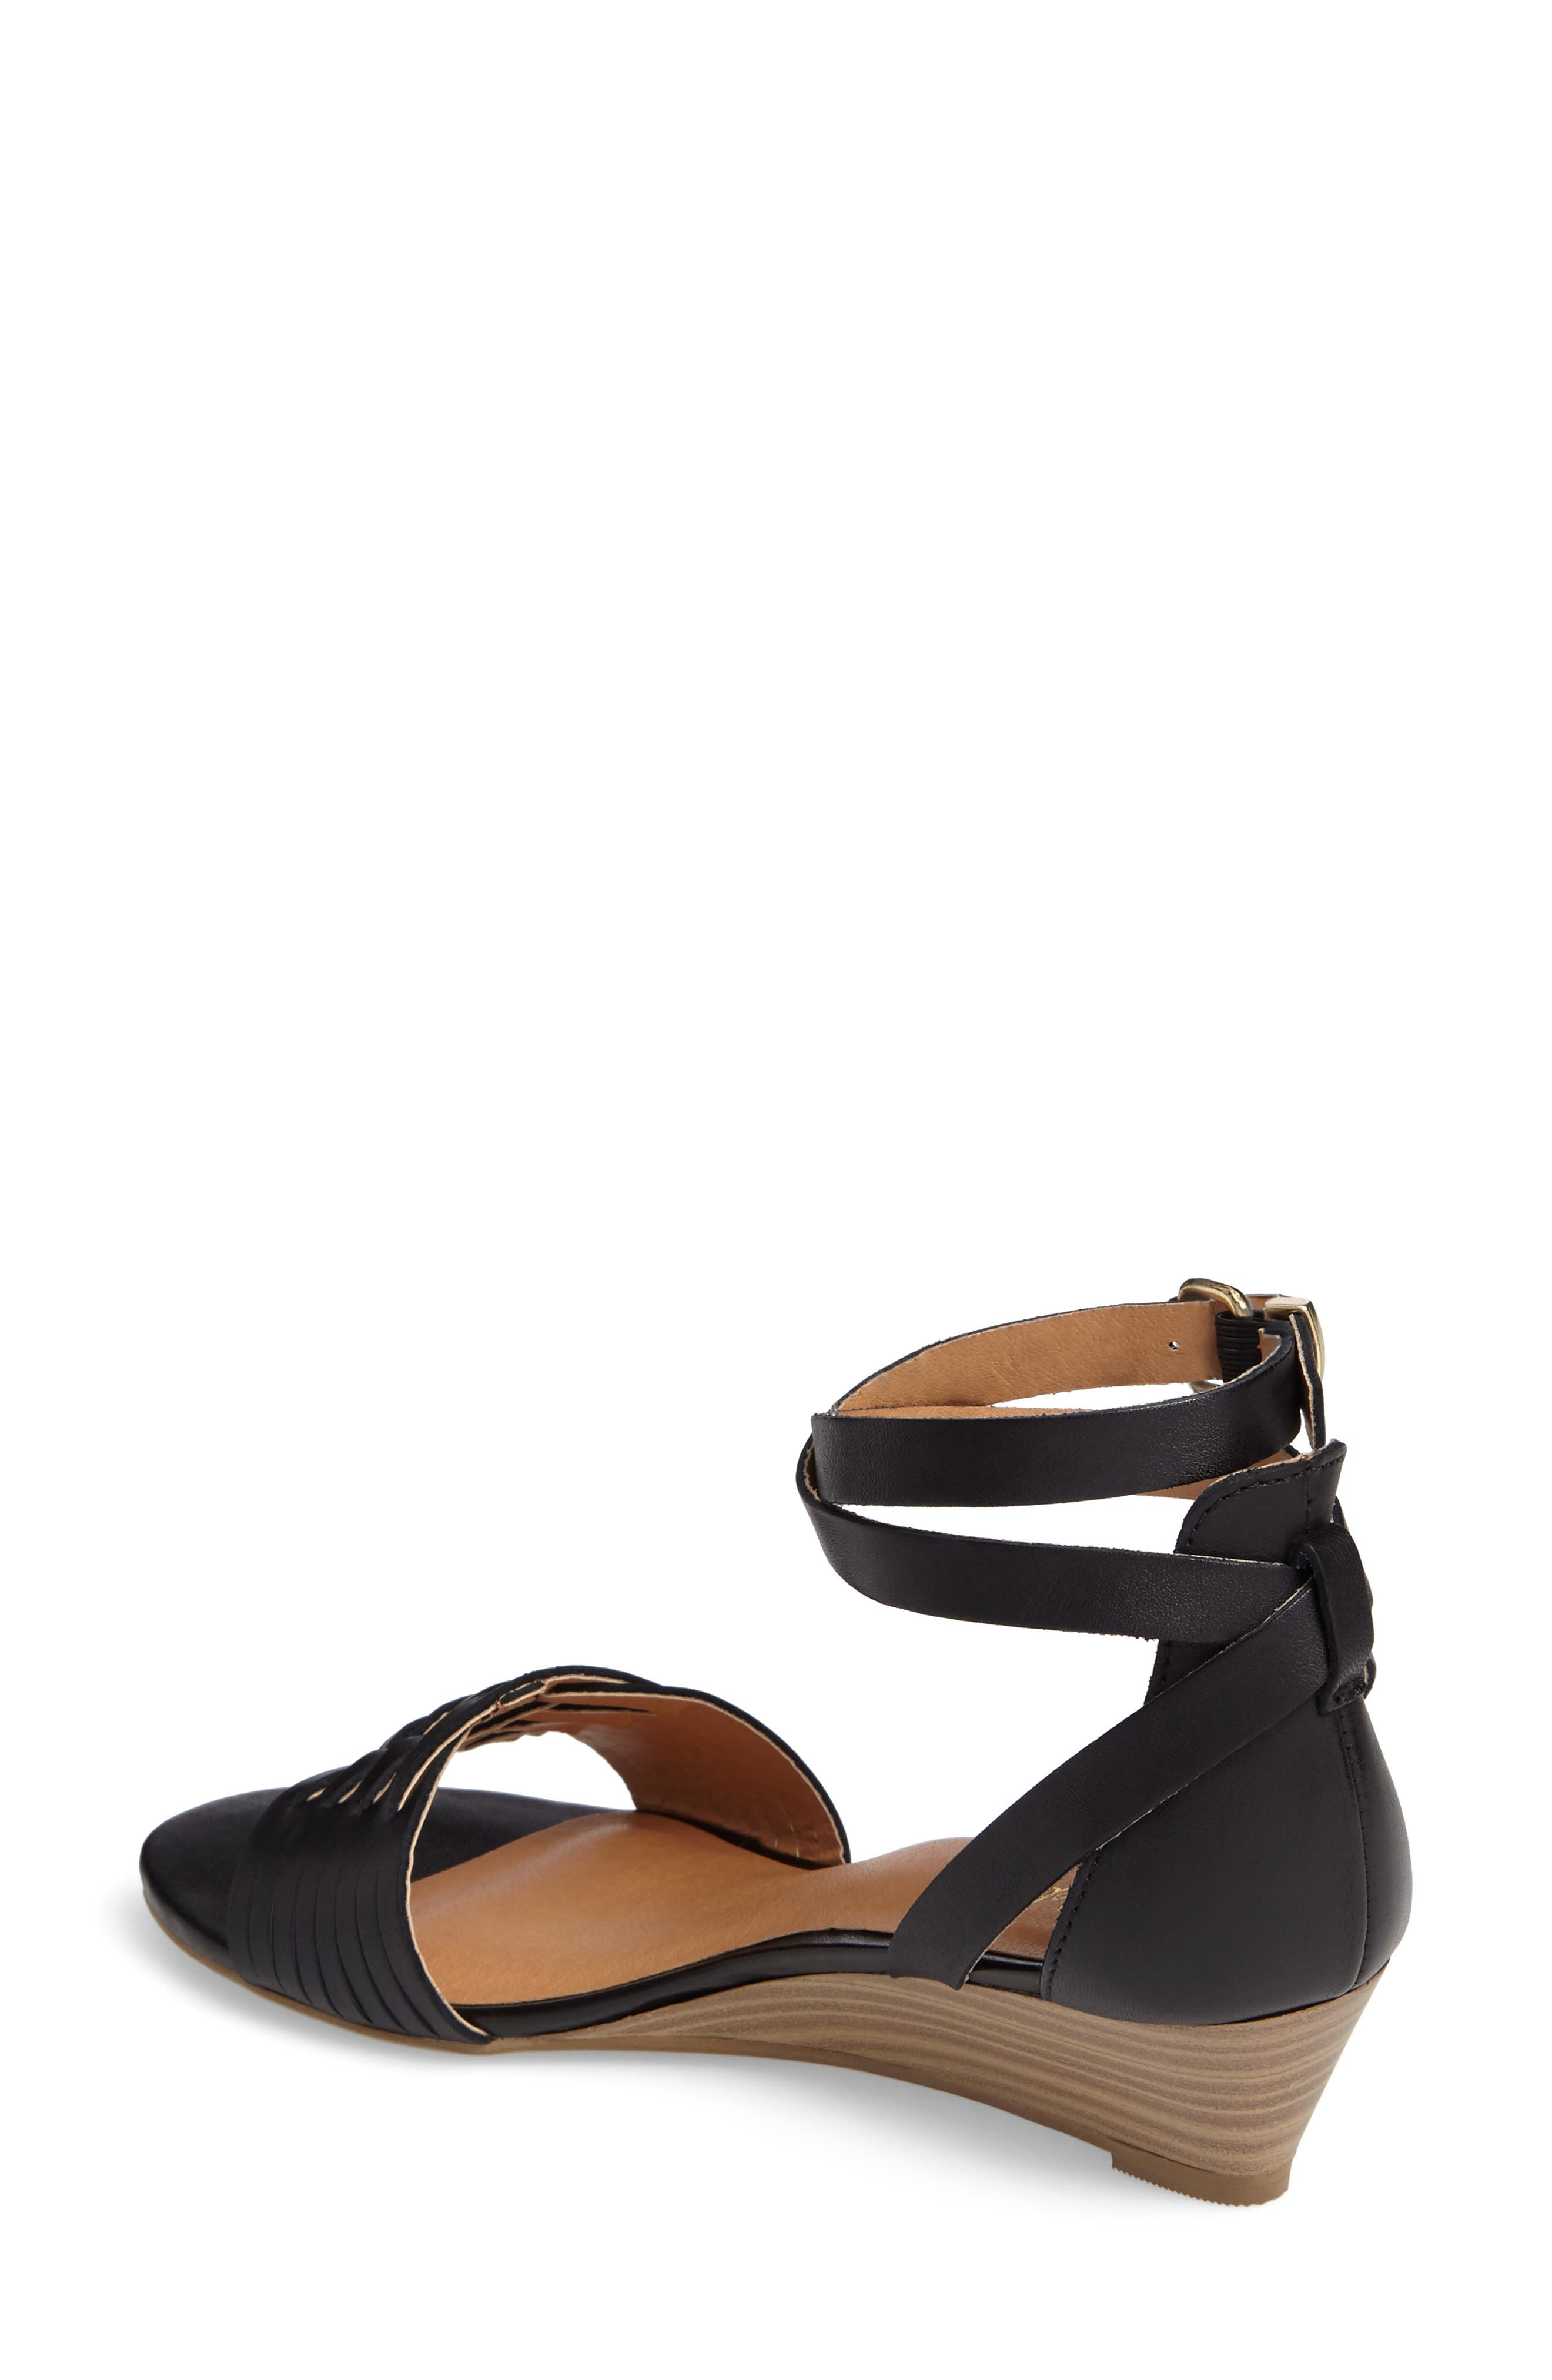 Alternate Image 2  - Seychelles Sincere Wraparound Wedge Sandal (Women)